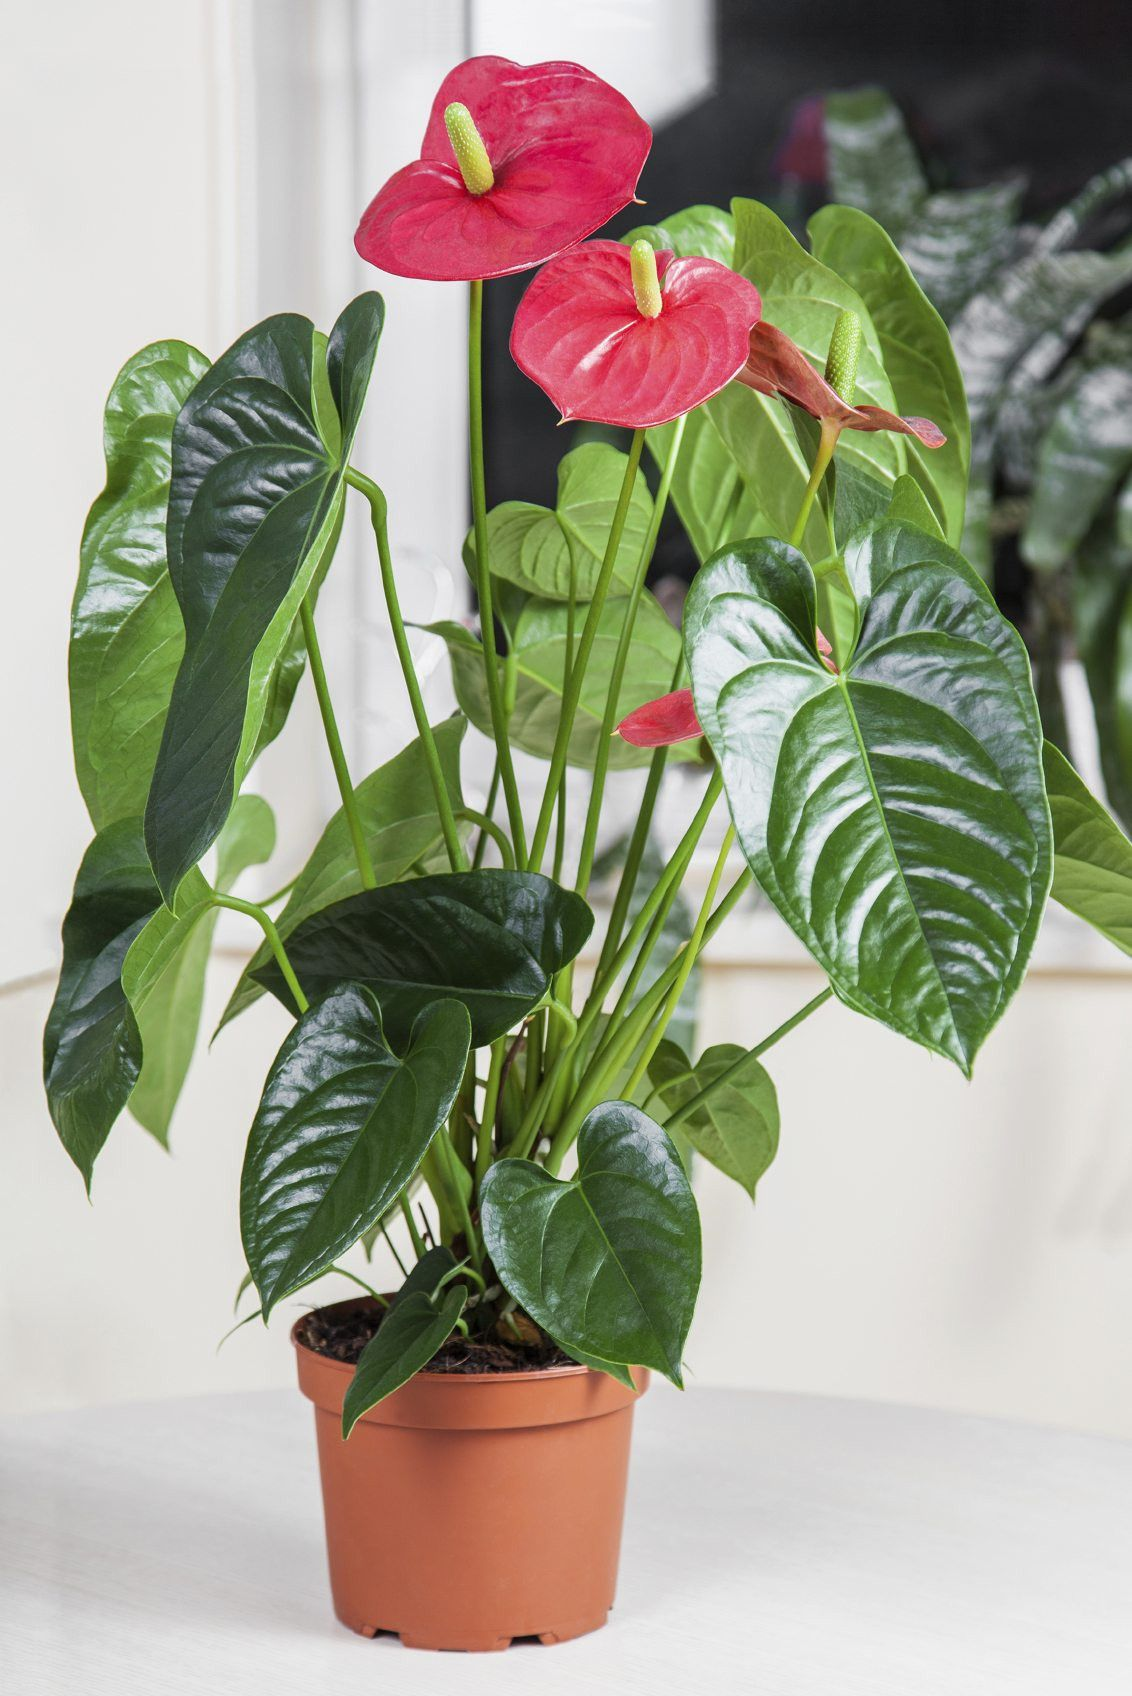 Understanding The Background Of Anthurium Million Flower Anthurium Million Flower In 2020 Anthurium Plant Common House Plants Air Purifying House Plants